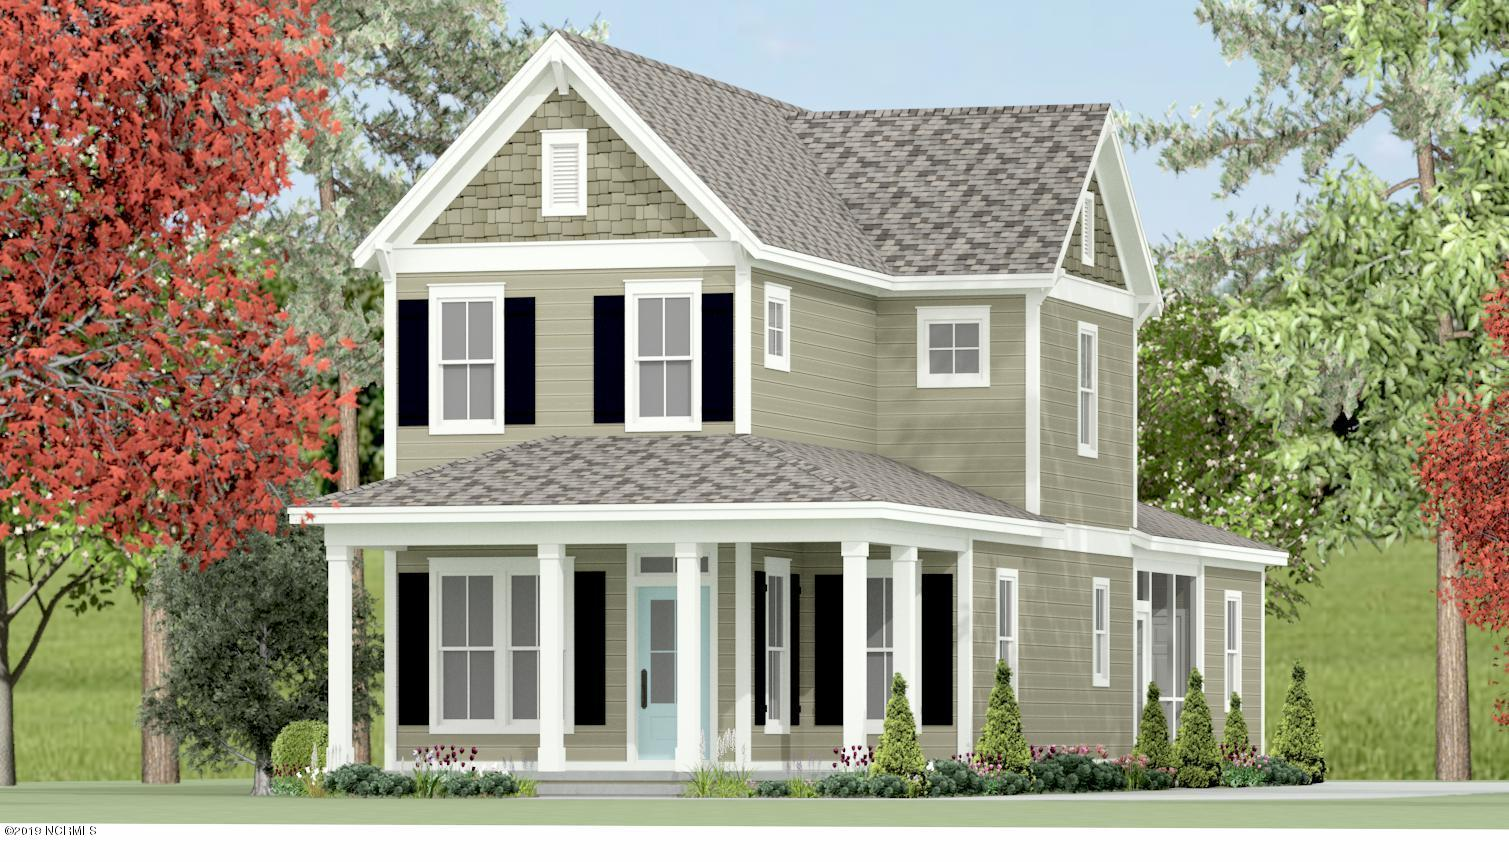 842 N Lord Street Southport, NC 28461